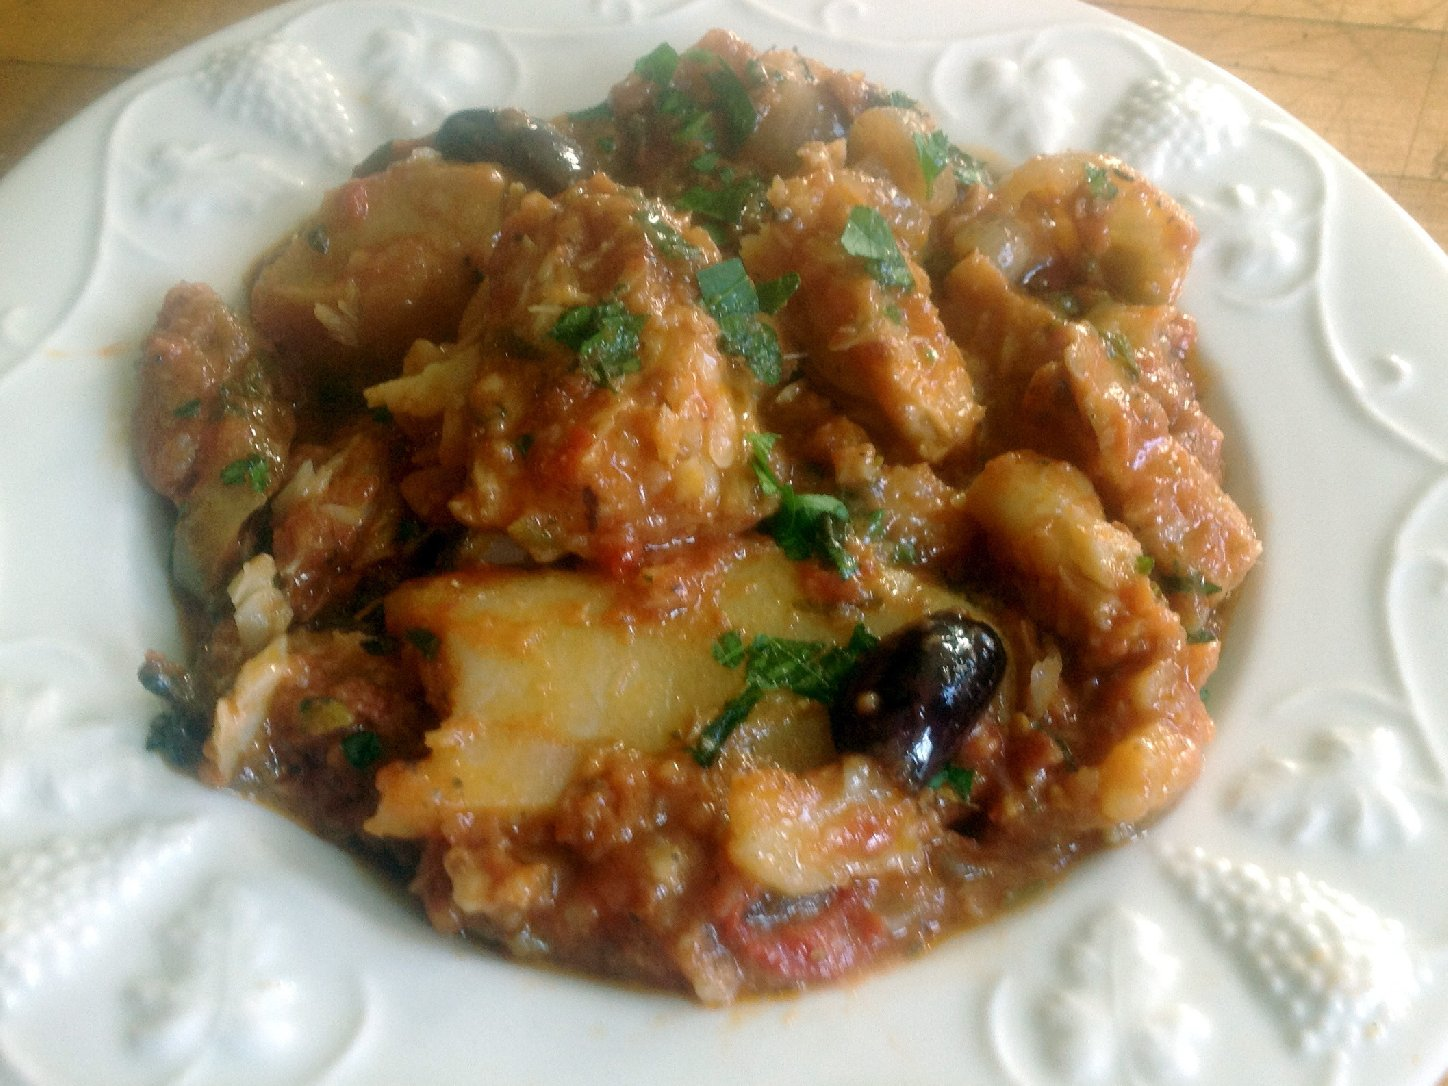 Baccala' Alla Napoletana (Salt Cod With Potatoes In Tomato Sauce). Photo: Tom Gilbert/NPR